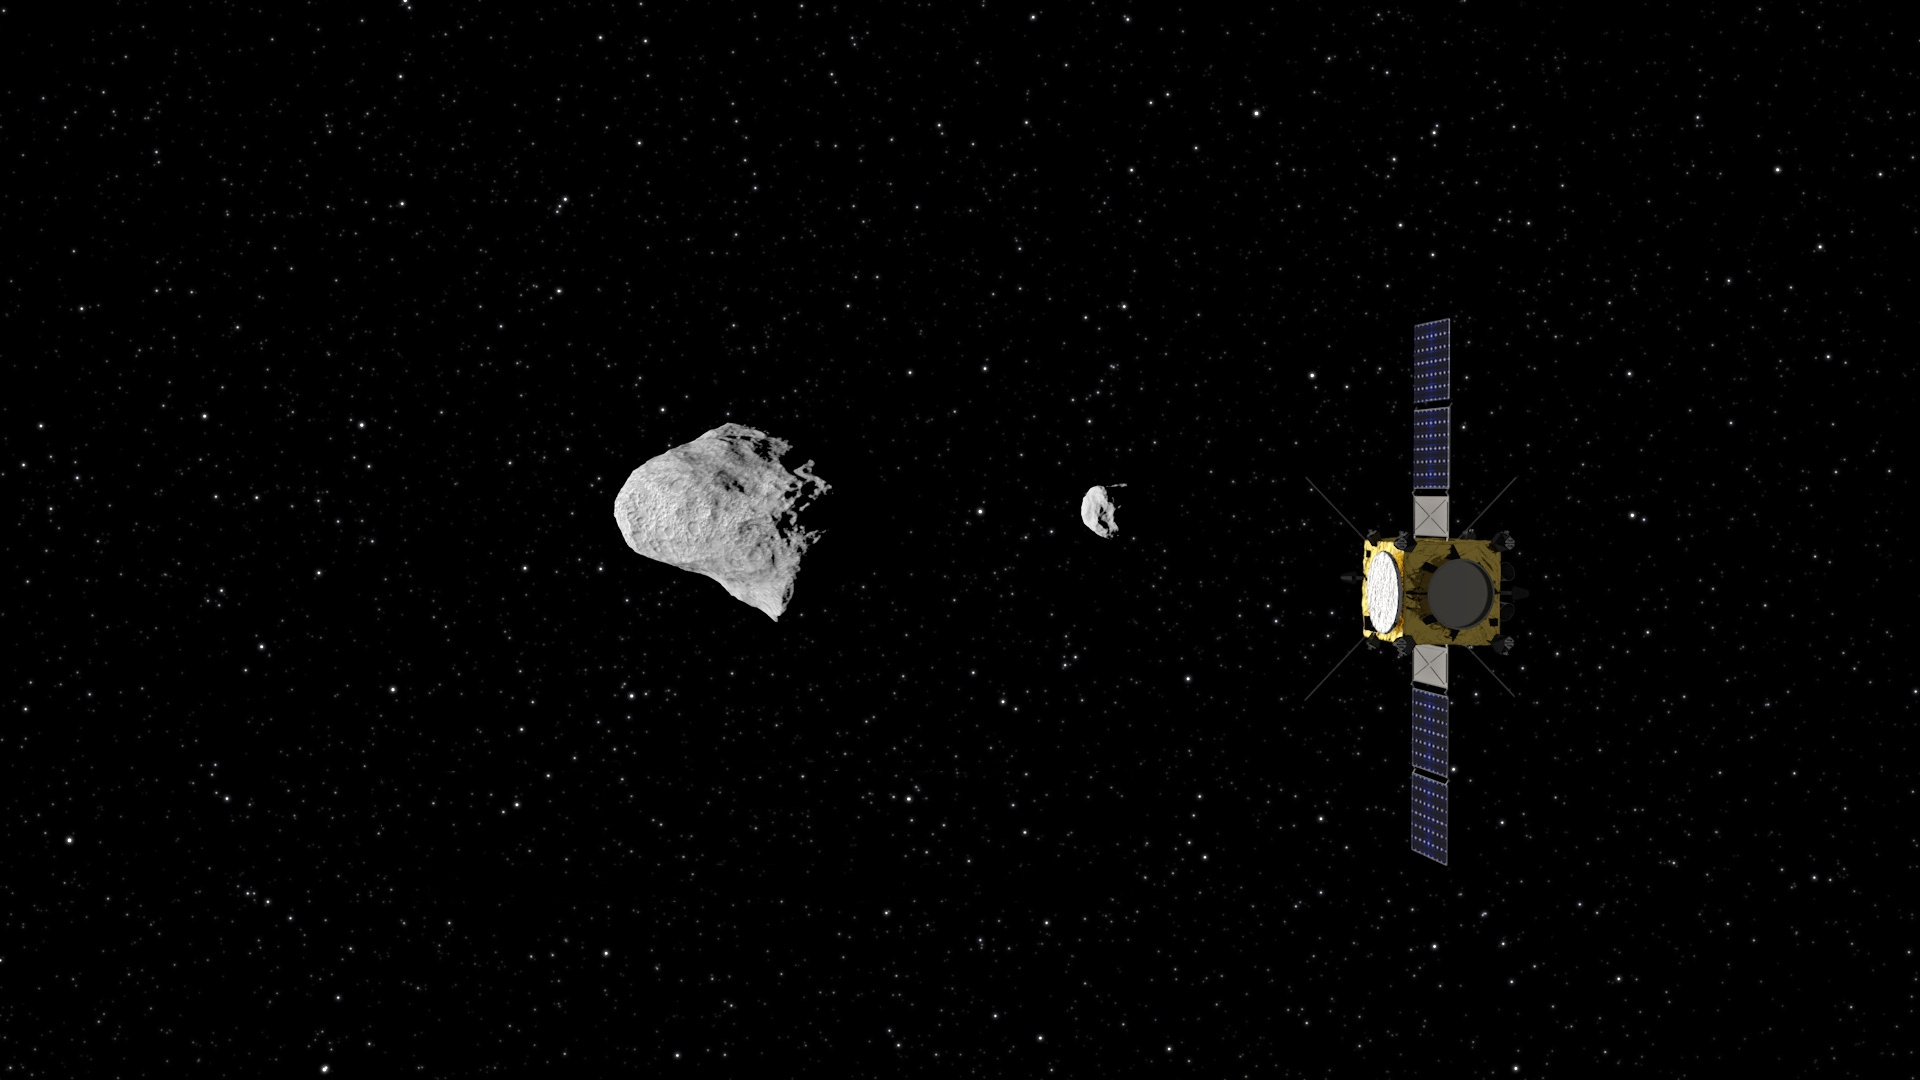 Avoiding 'Armageddon': Asteroid Deflection Test Planned for 2022